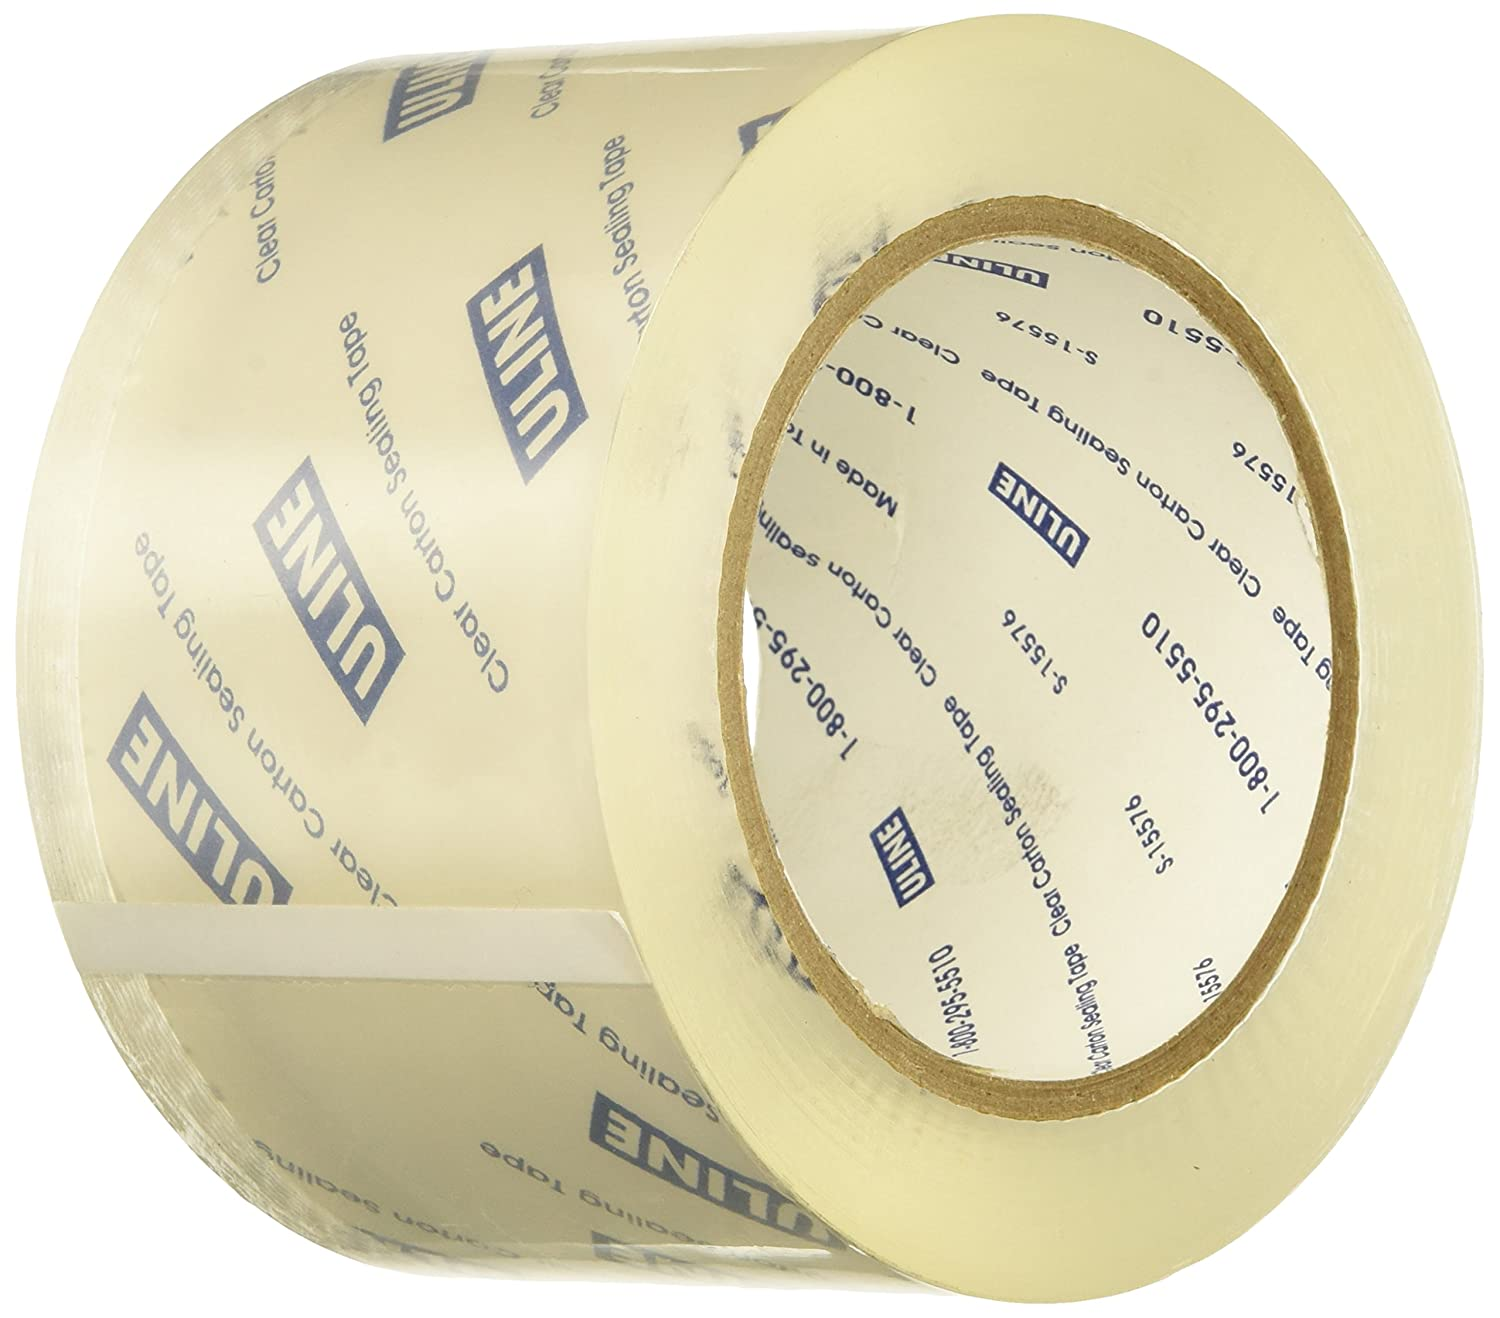 Uline S-1893 Tape Packing and Shipping Clear 3 Inches Wide by 55 Yards Long 2.6 Mil 1 Per Order Manhattan Comfort